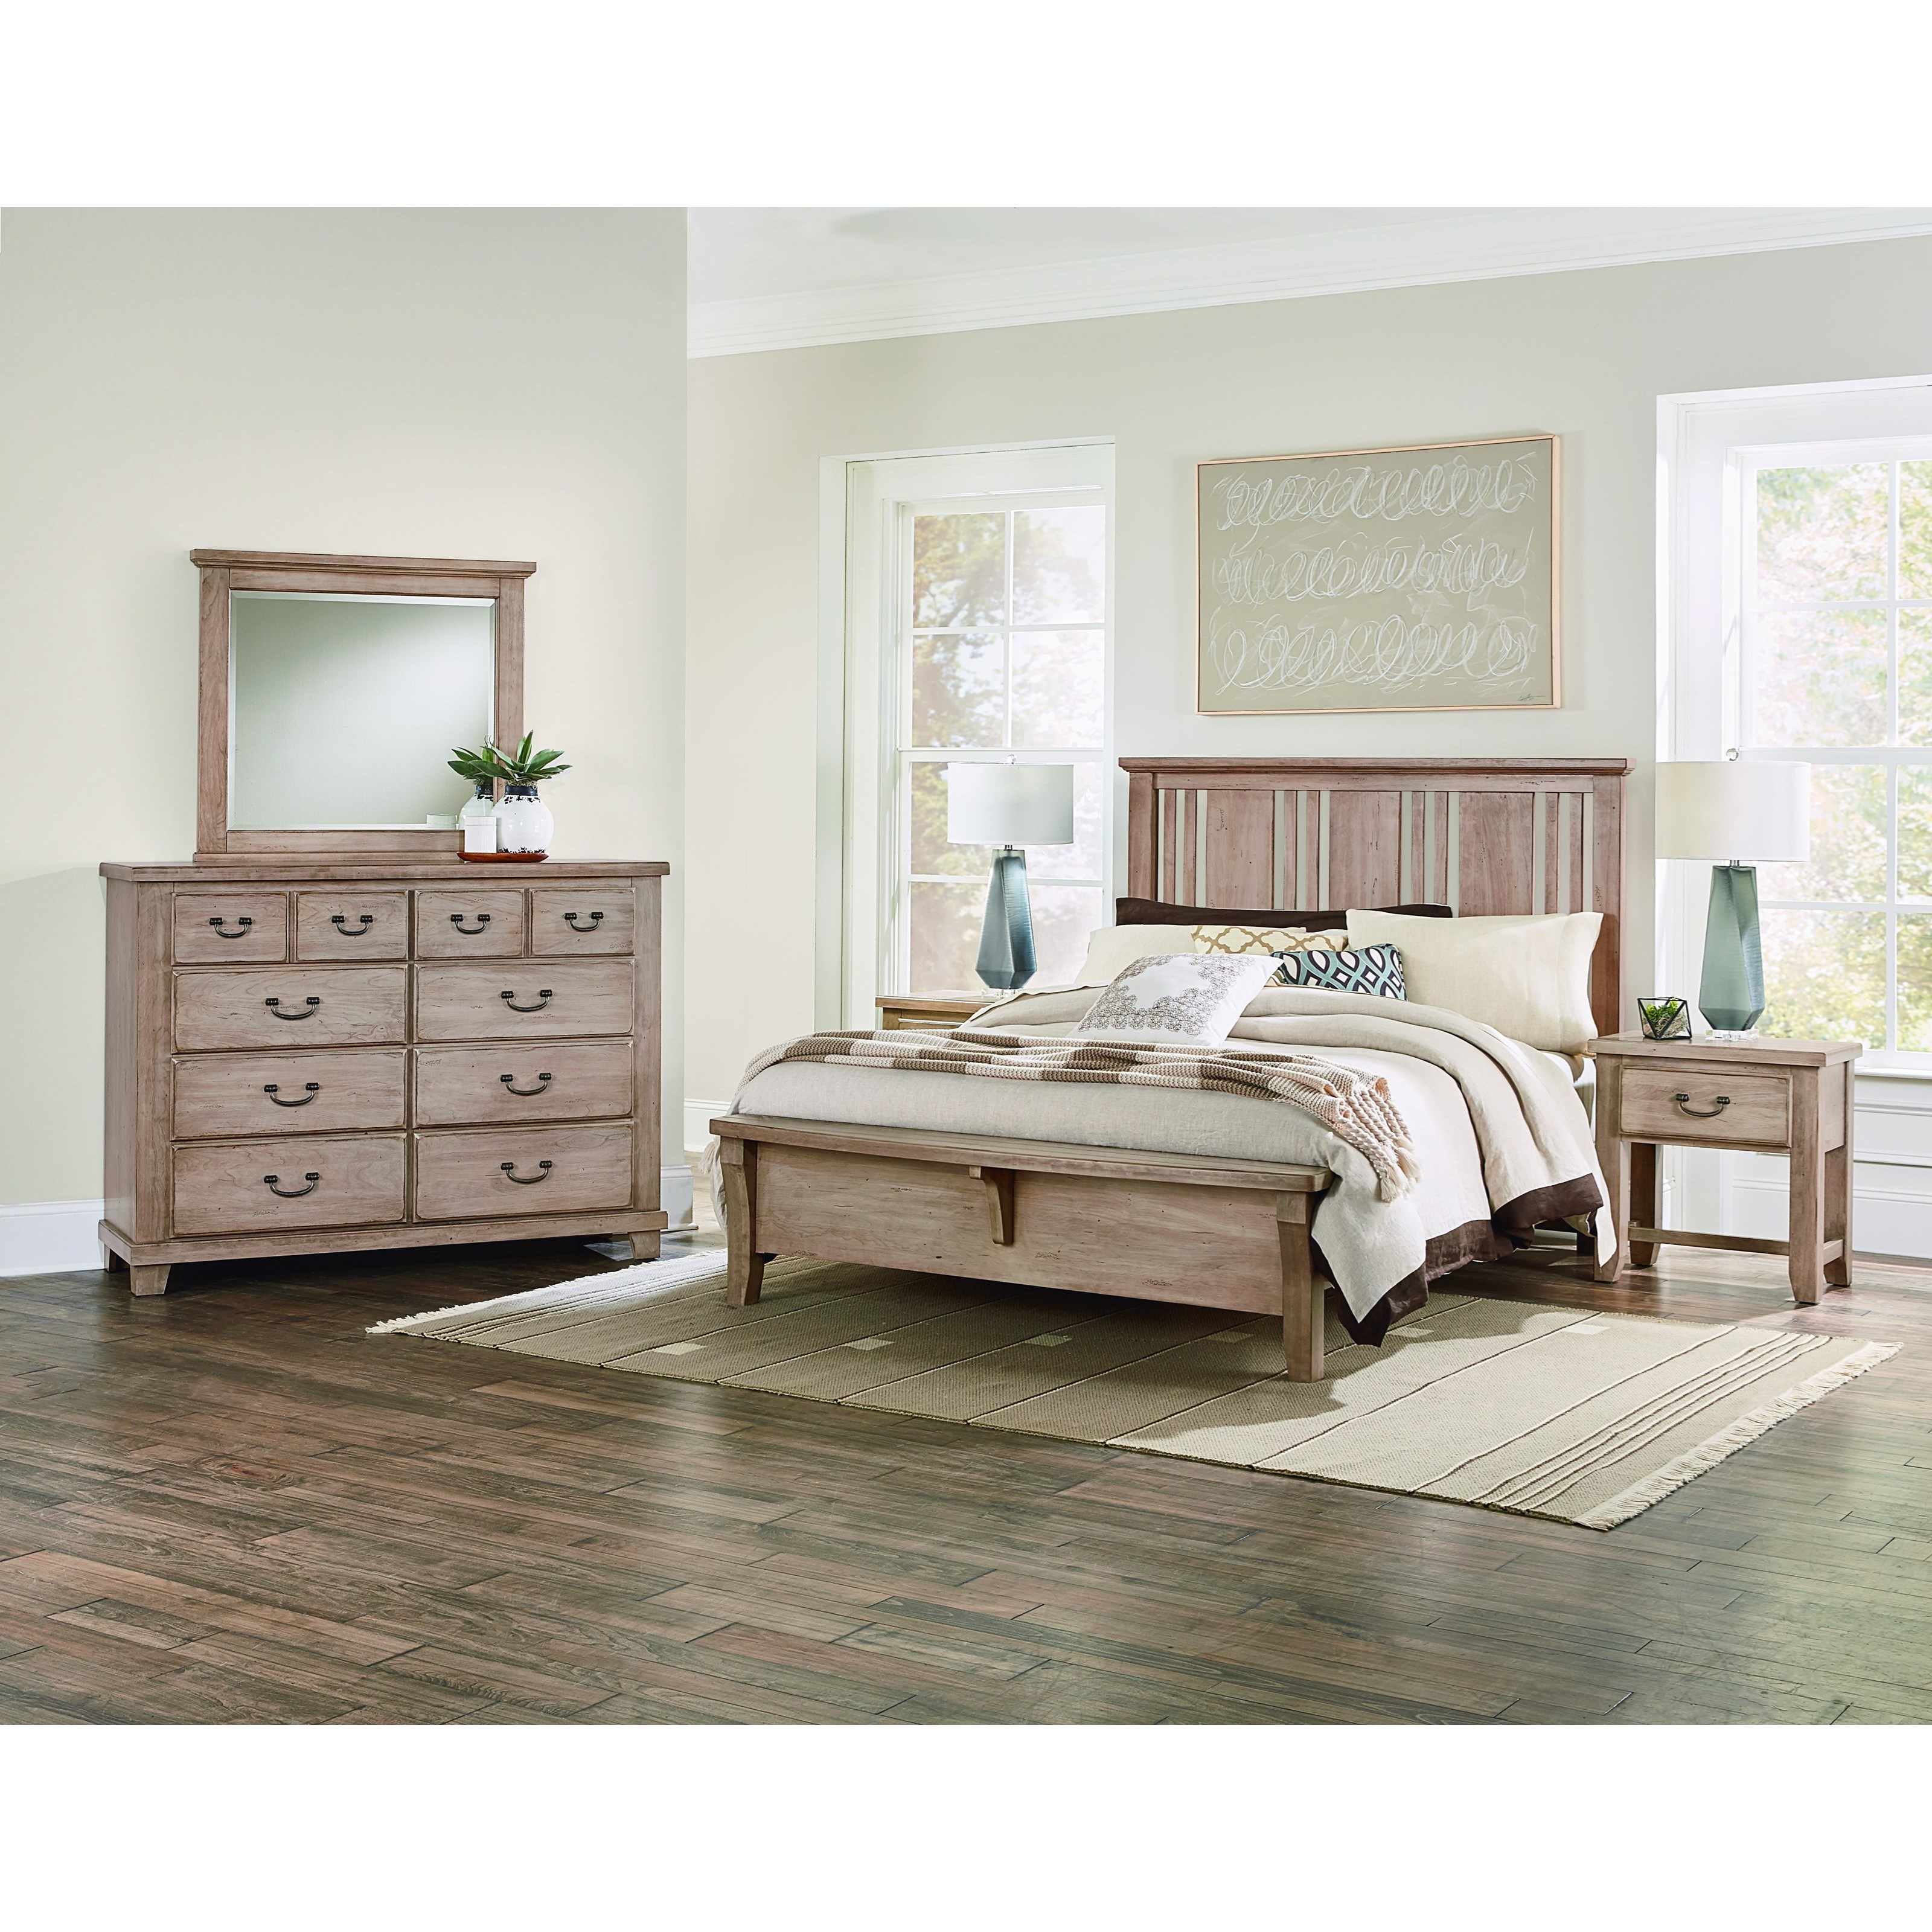 Vaughan Bassett American Cherry King Bedroom Group - Item Number: 418 K Bedroom Group 2